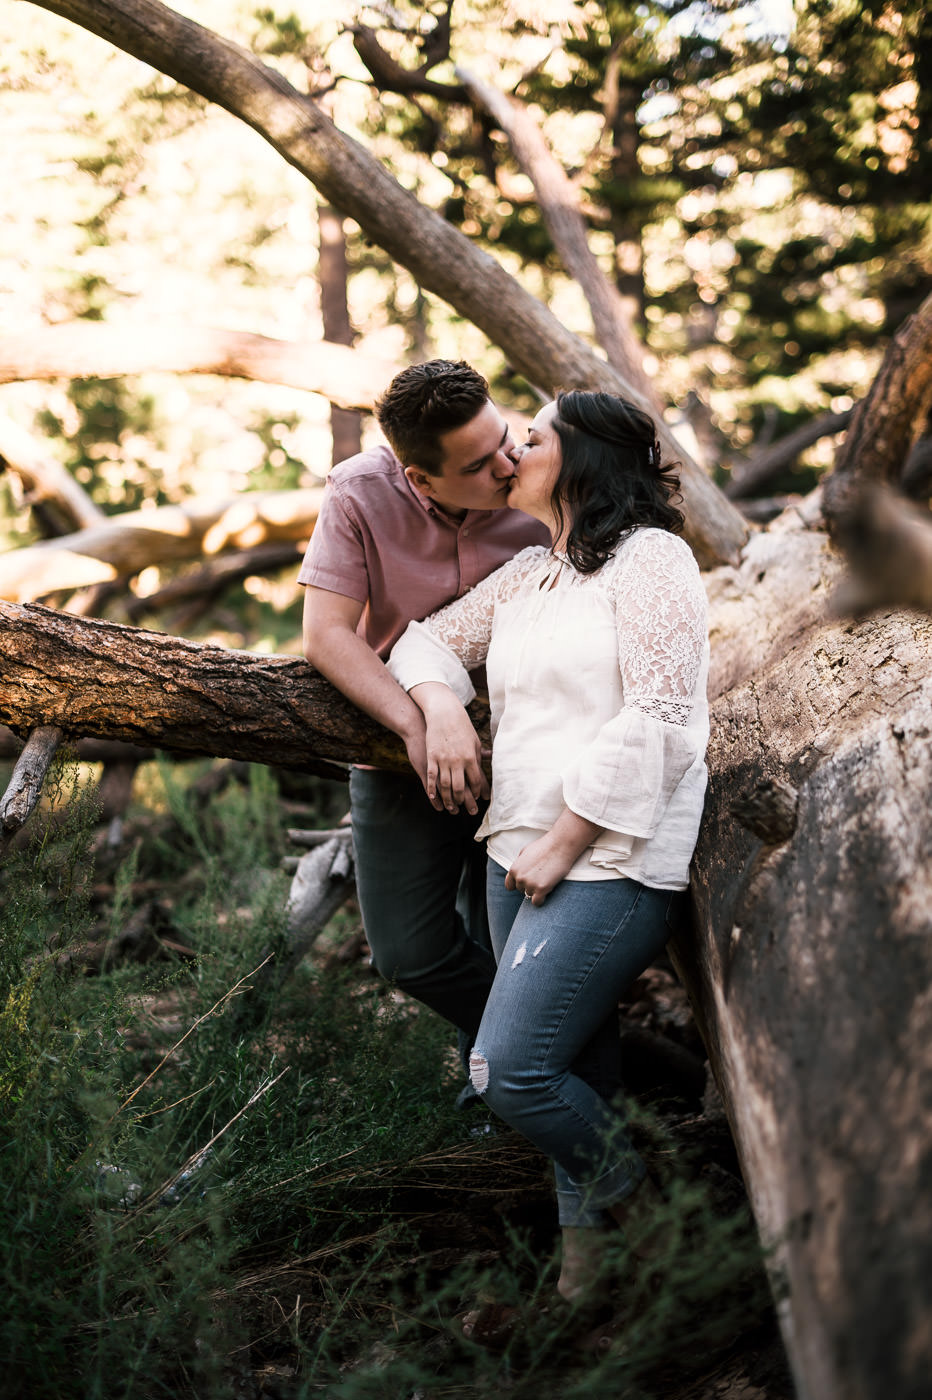 Couple has a romantic kiss next to a fallen tree in the woods of Mt San Jacinto.